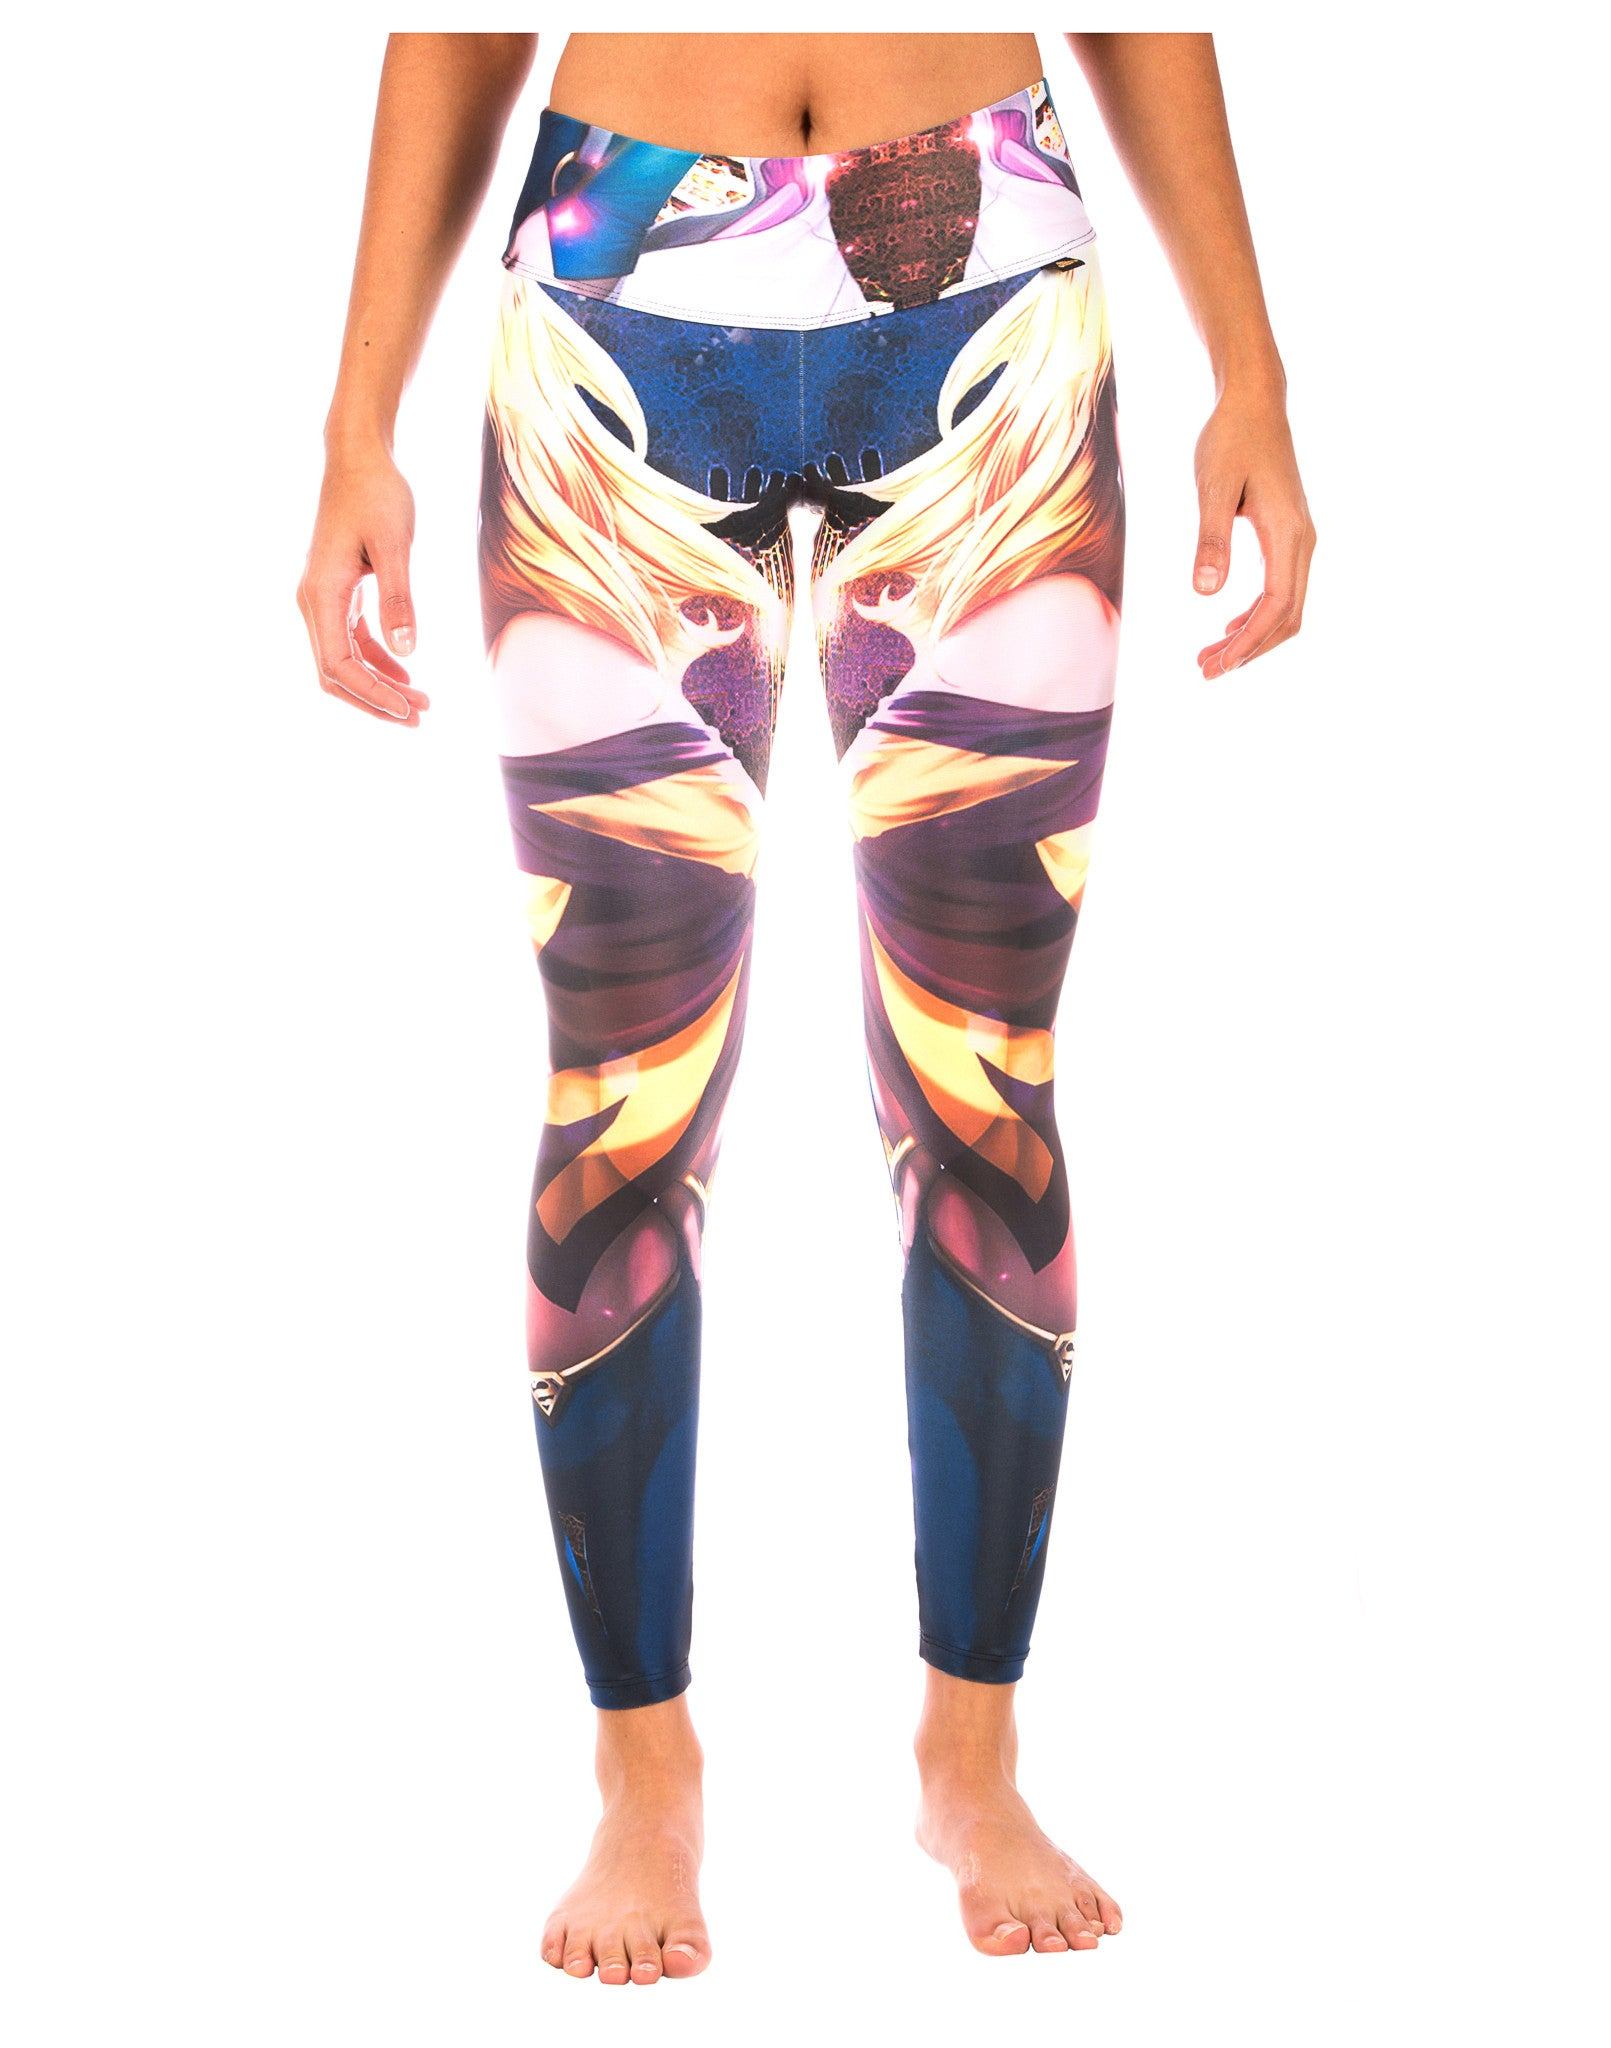 Yoga Pants - Blondie - LavaLoka - So much personality in one pair of workout pants. Hit the gym in style!